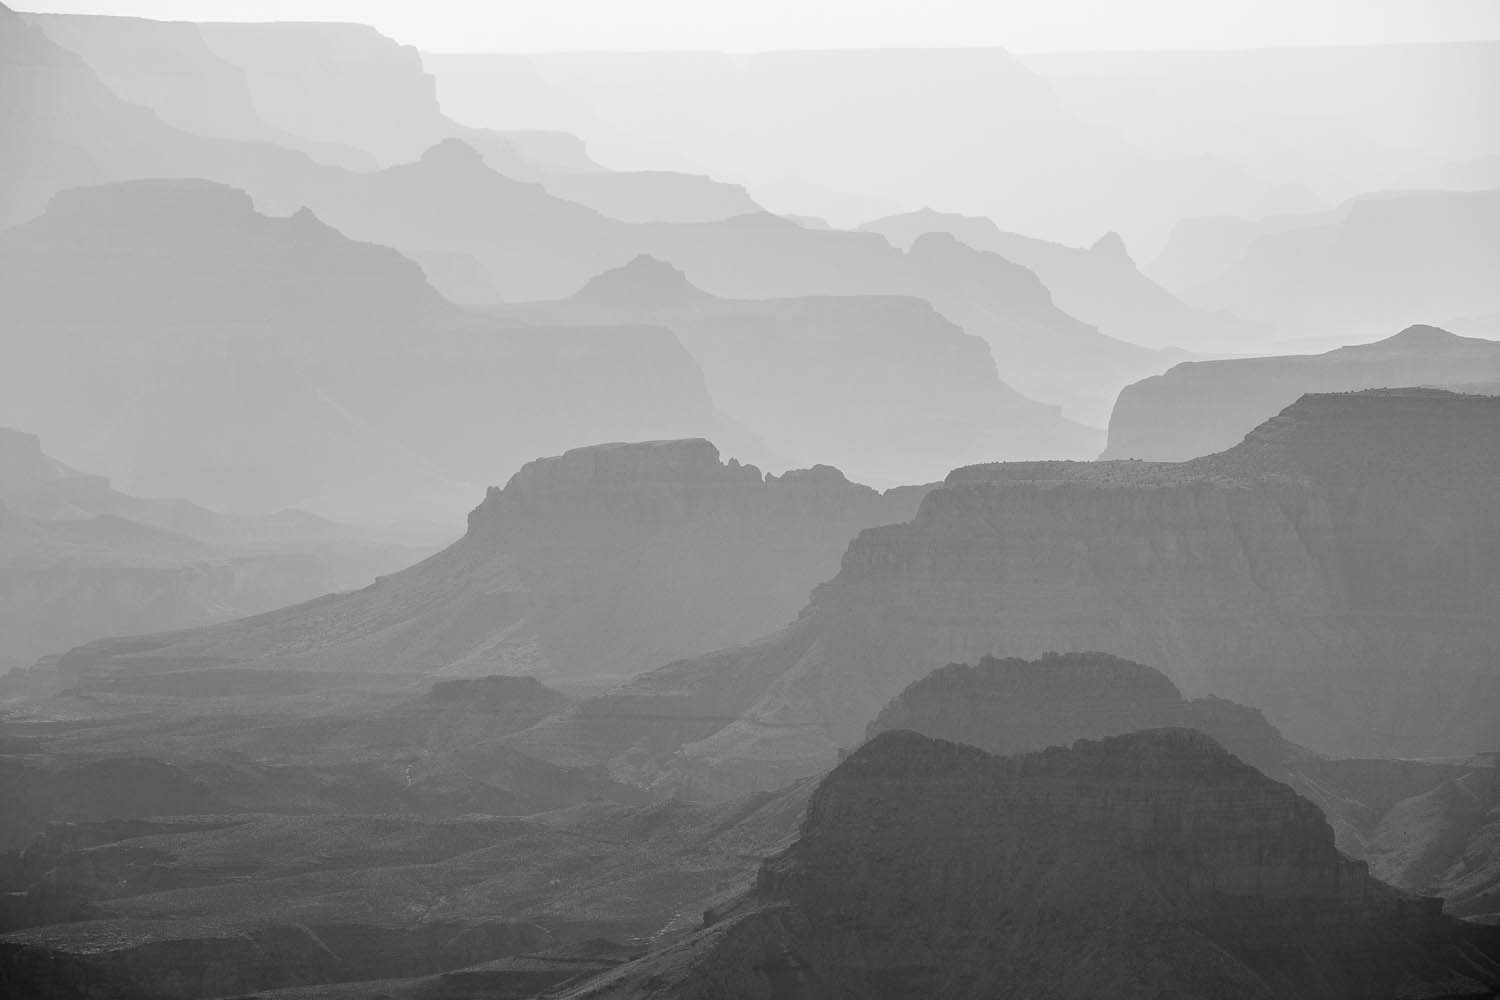 The many layers of the Grand Canyon